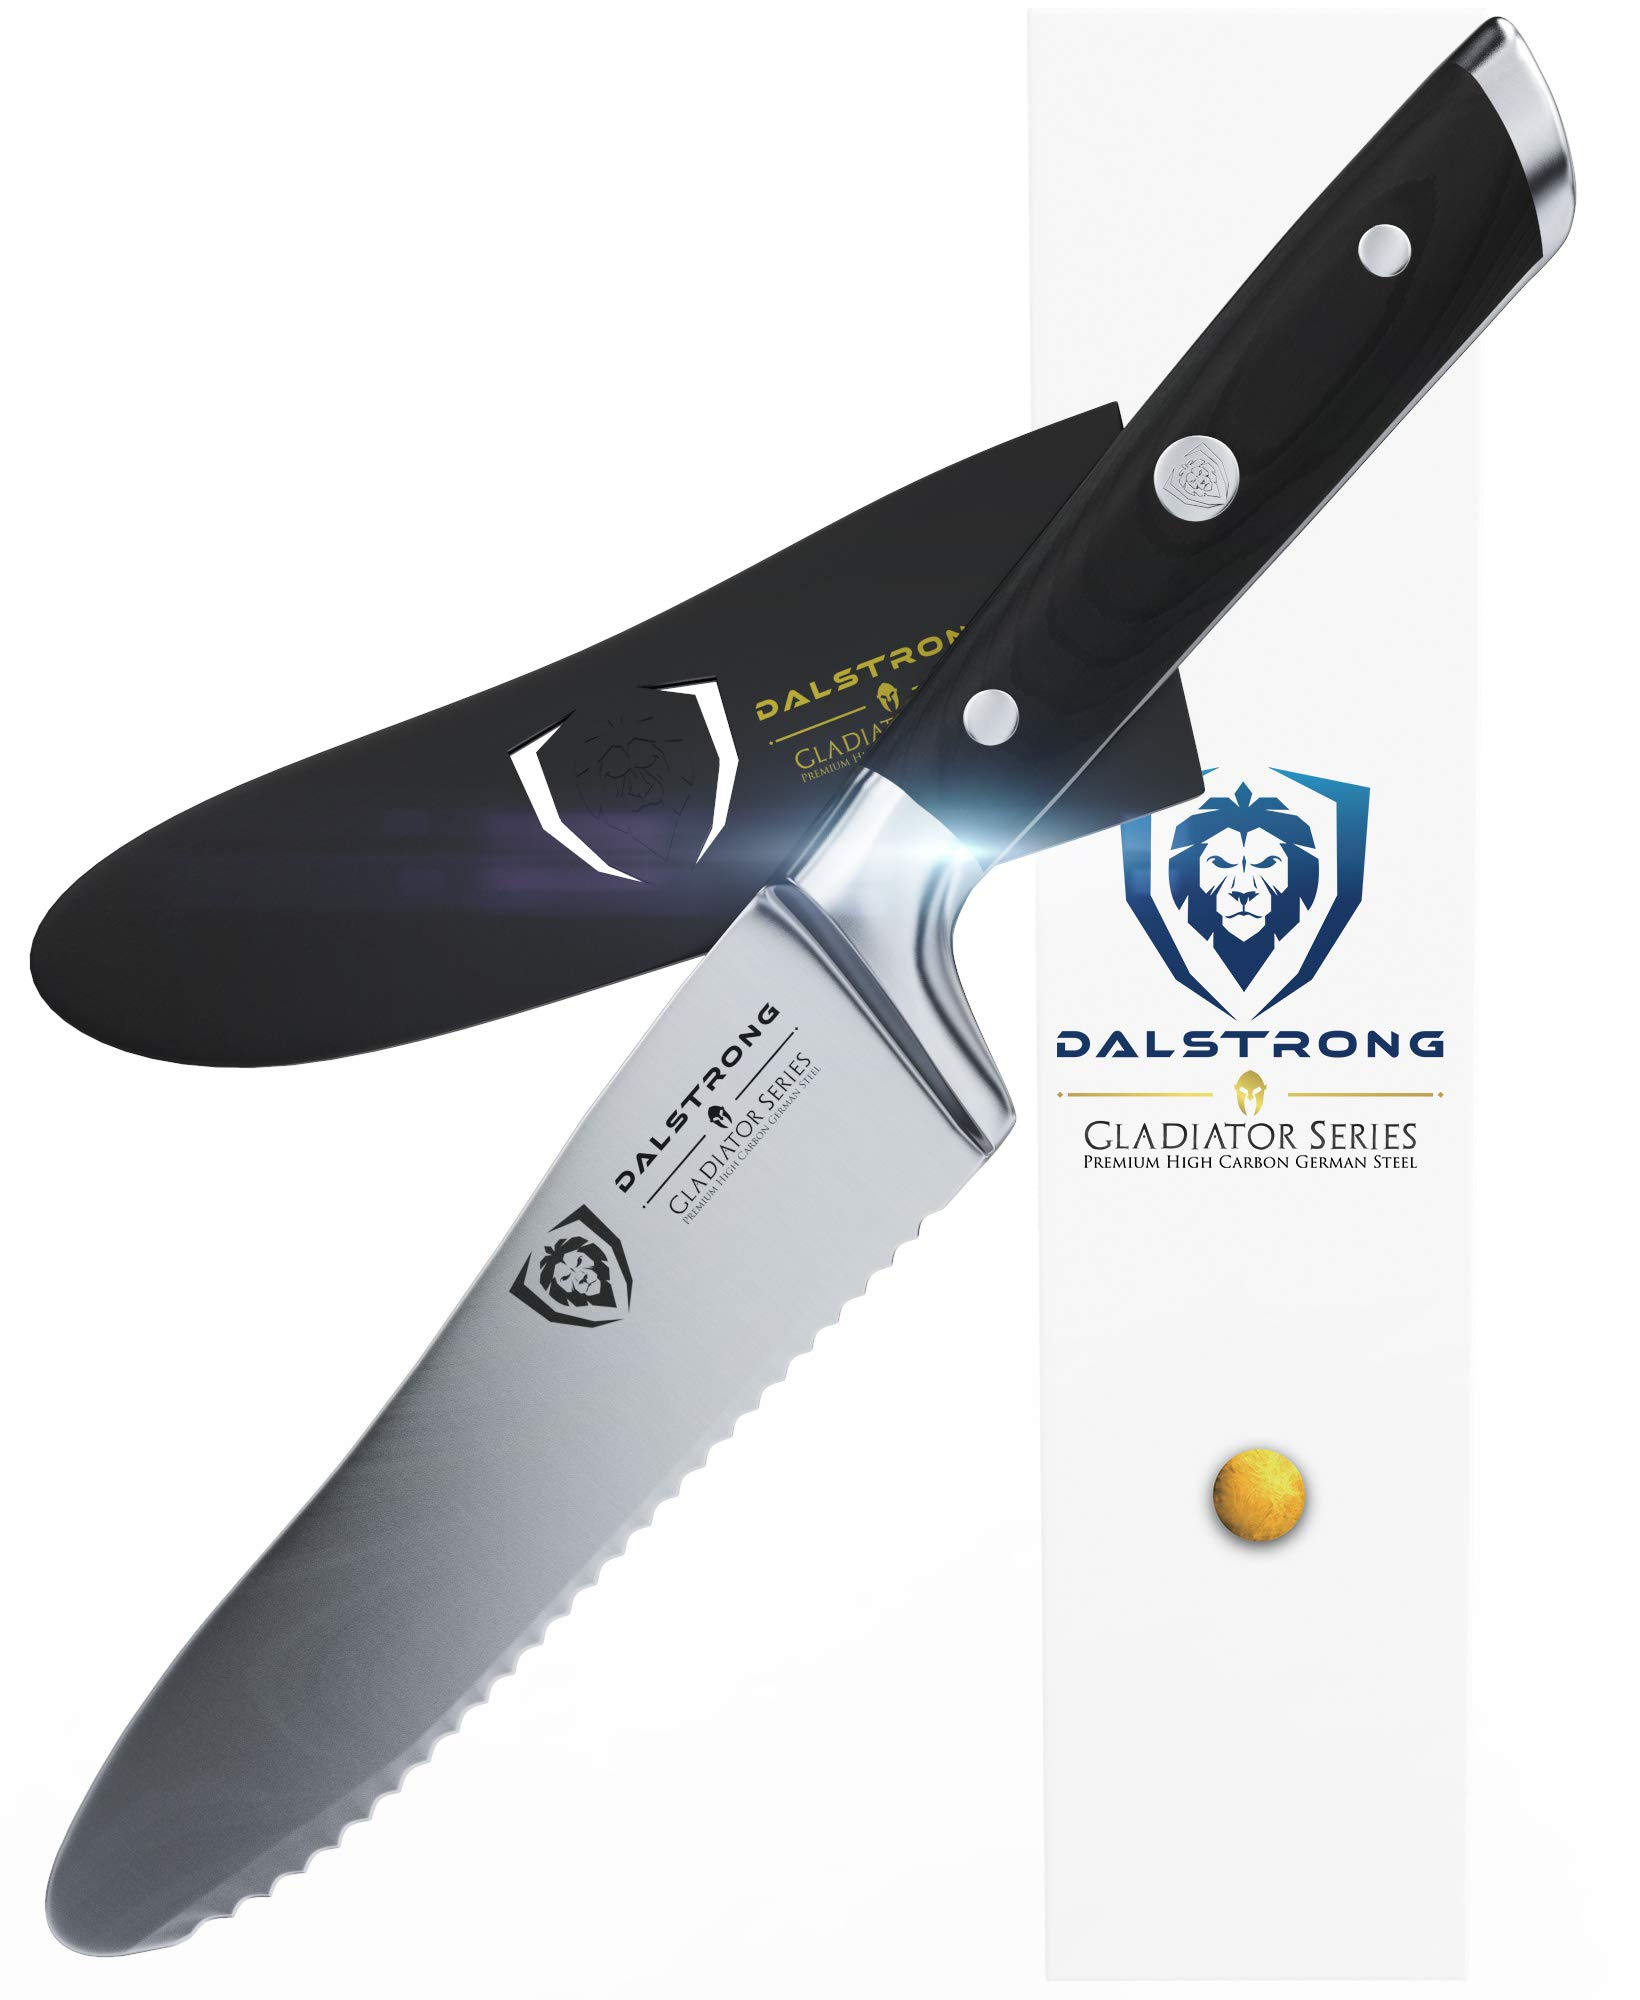 DALSTRONG Gladiator Series Sandwich Knife - 6'' Ultimate Utility Knife and Spreader - German HC Steel -Guard Included